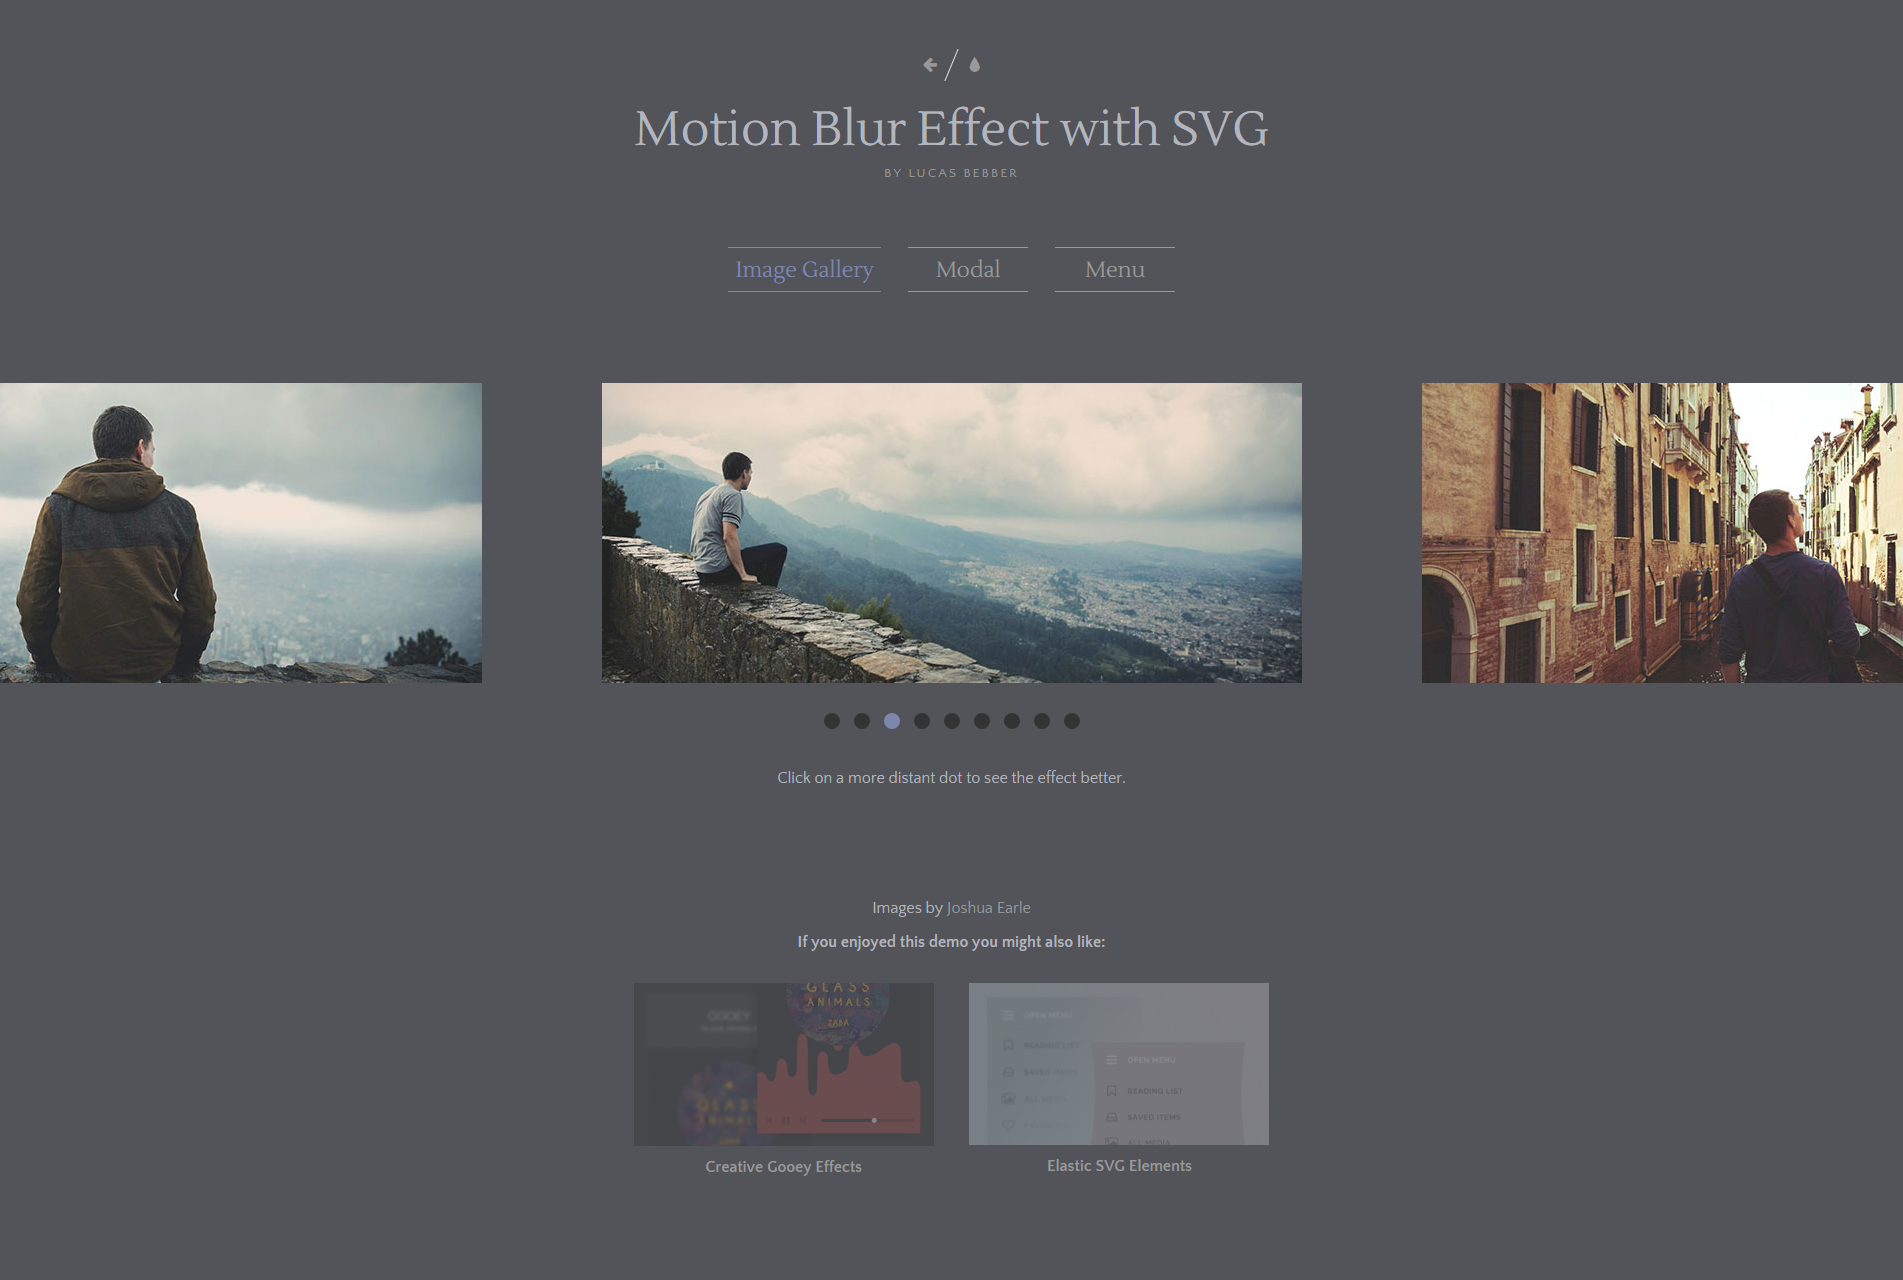 Motion Blur Effect with SVG   Image Gallery